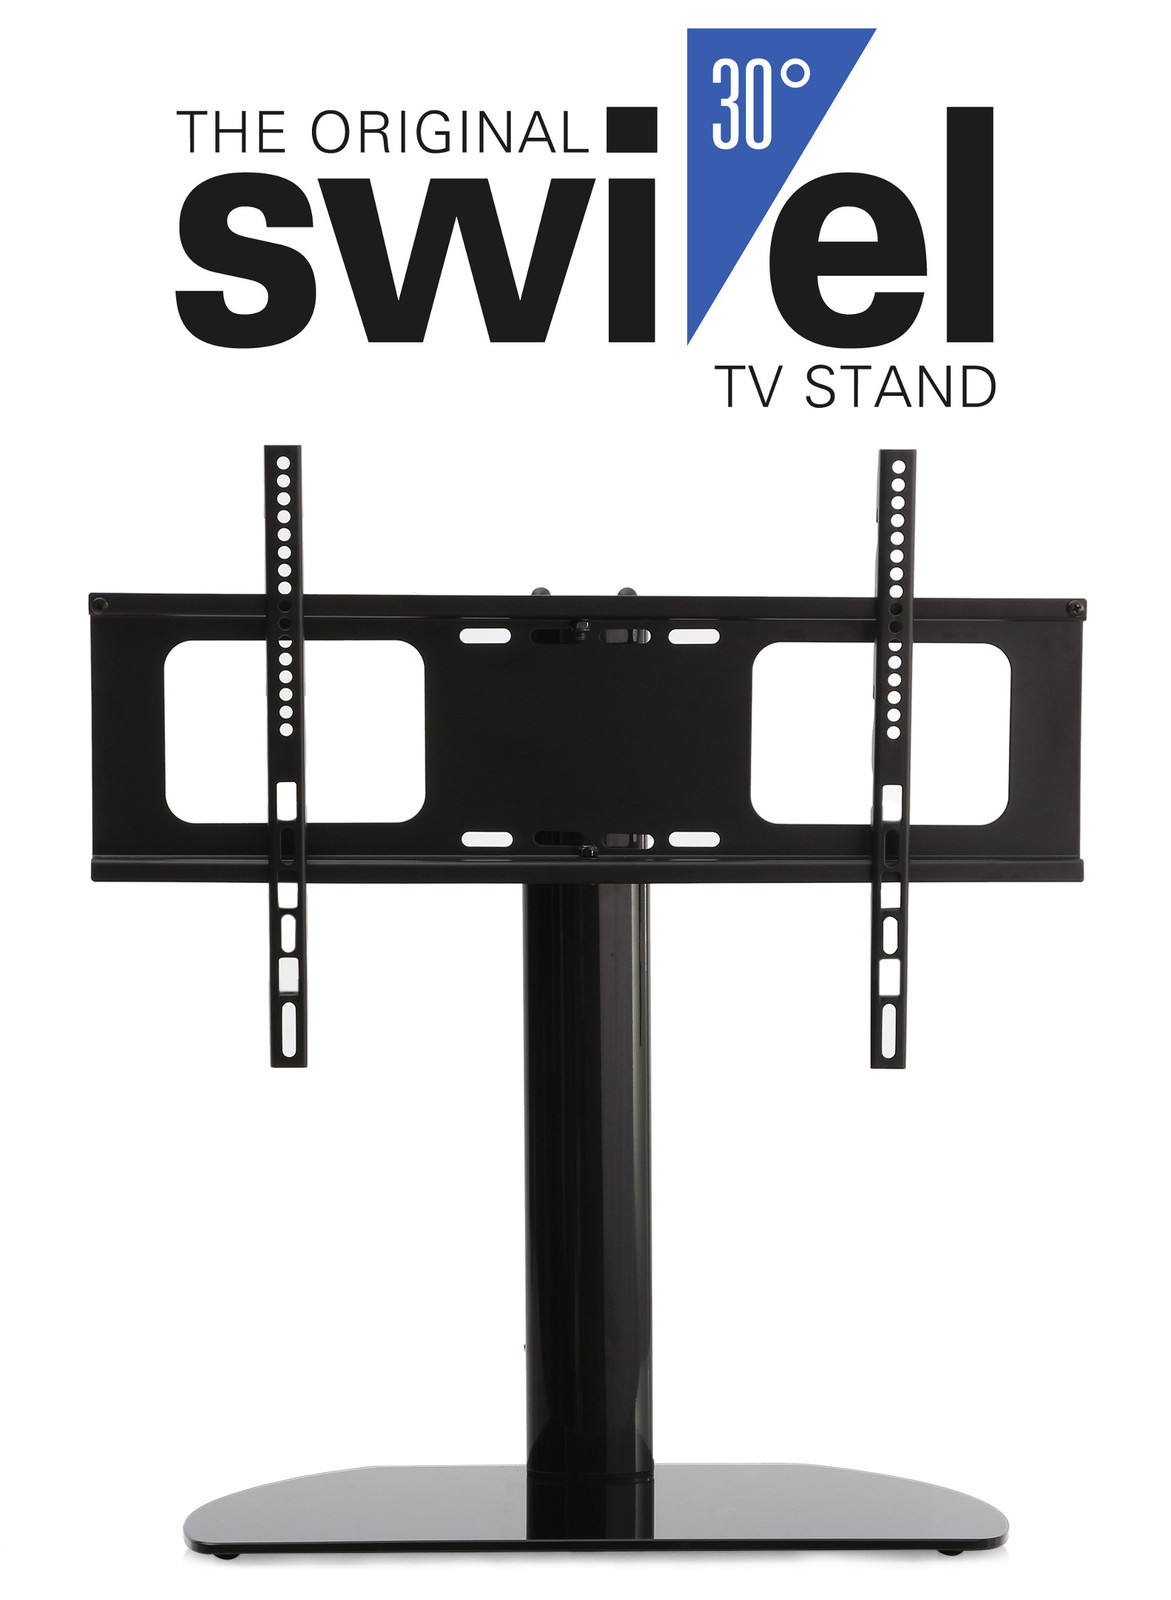 New Universal Replacement Swivel TV Stand/Base for Sony Bravia KDL-46S5100